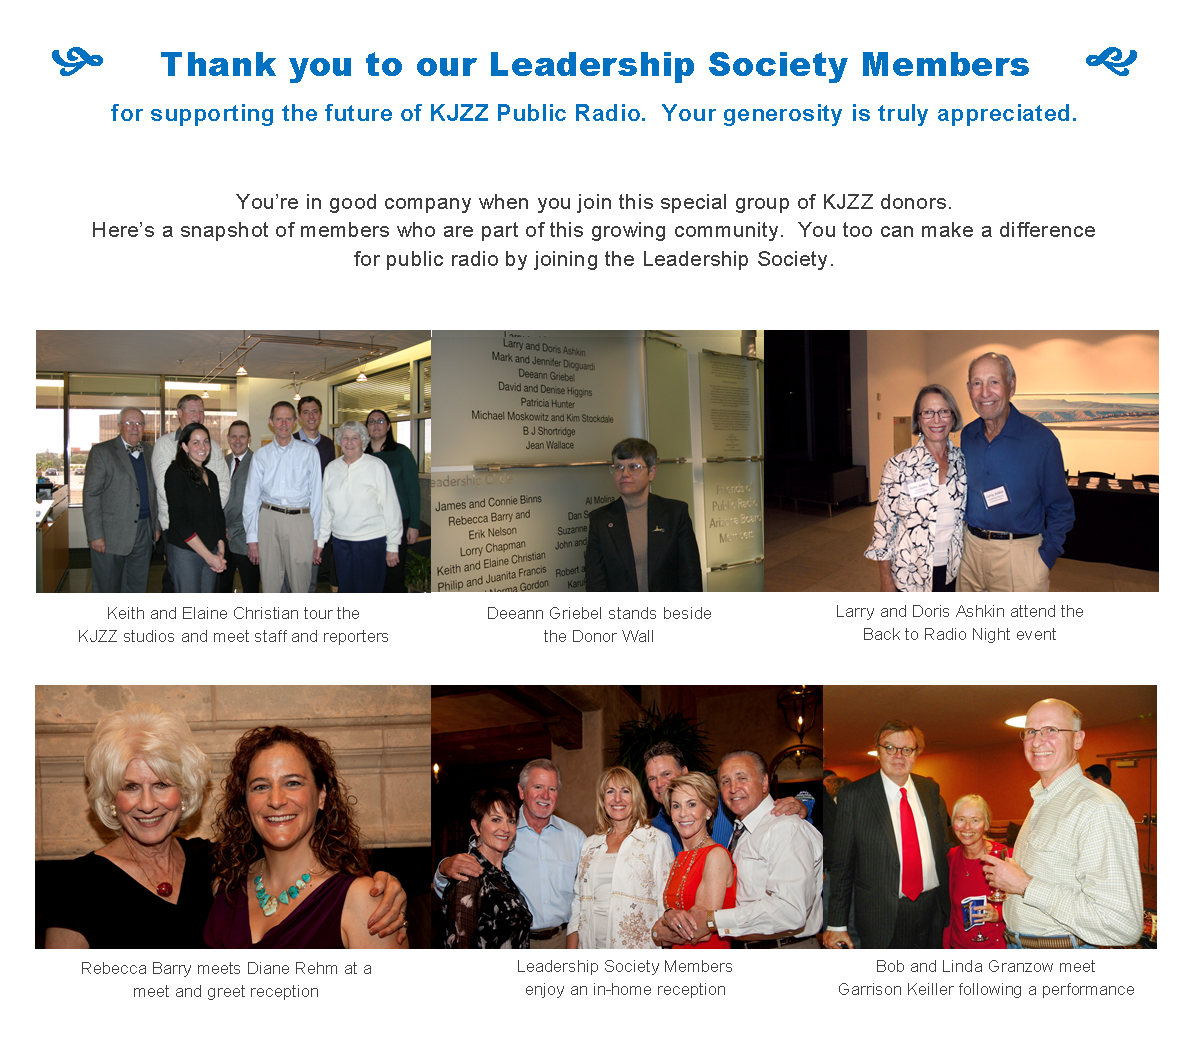 Leadership Society Members